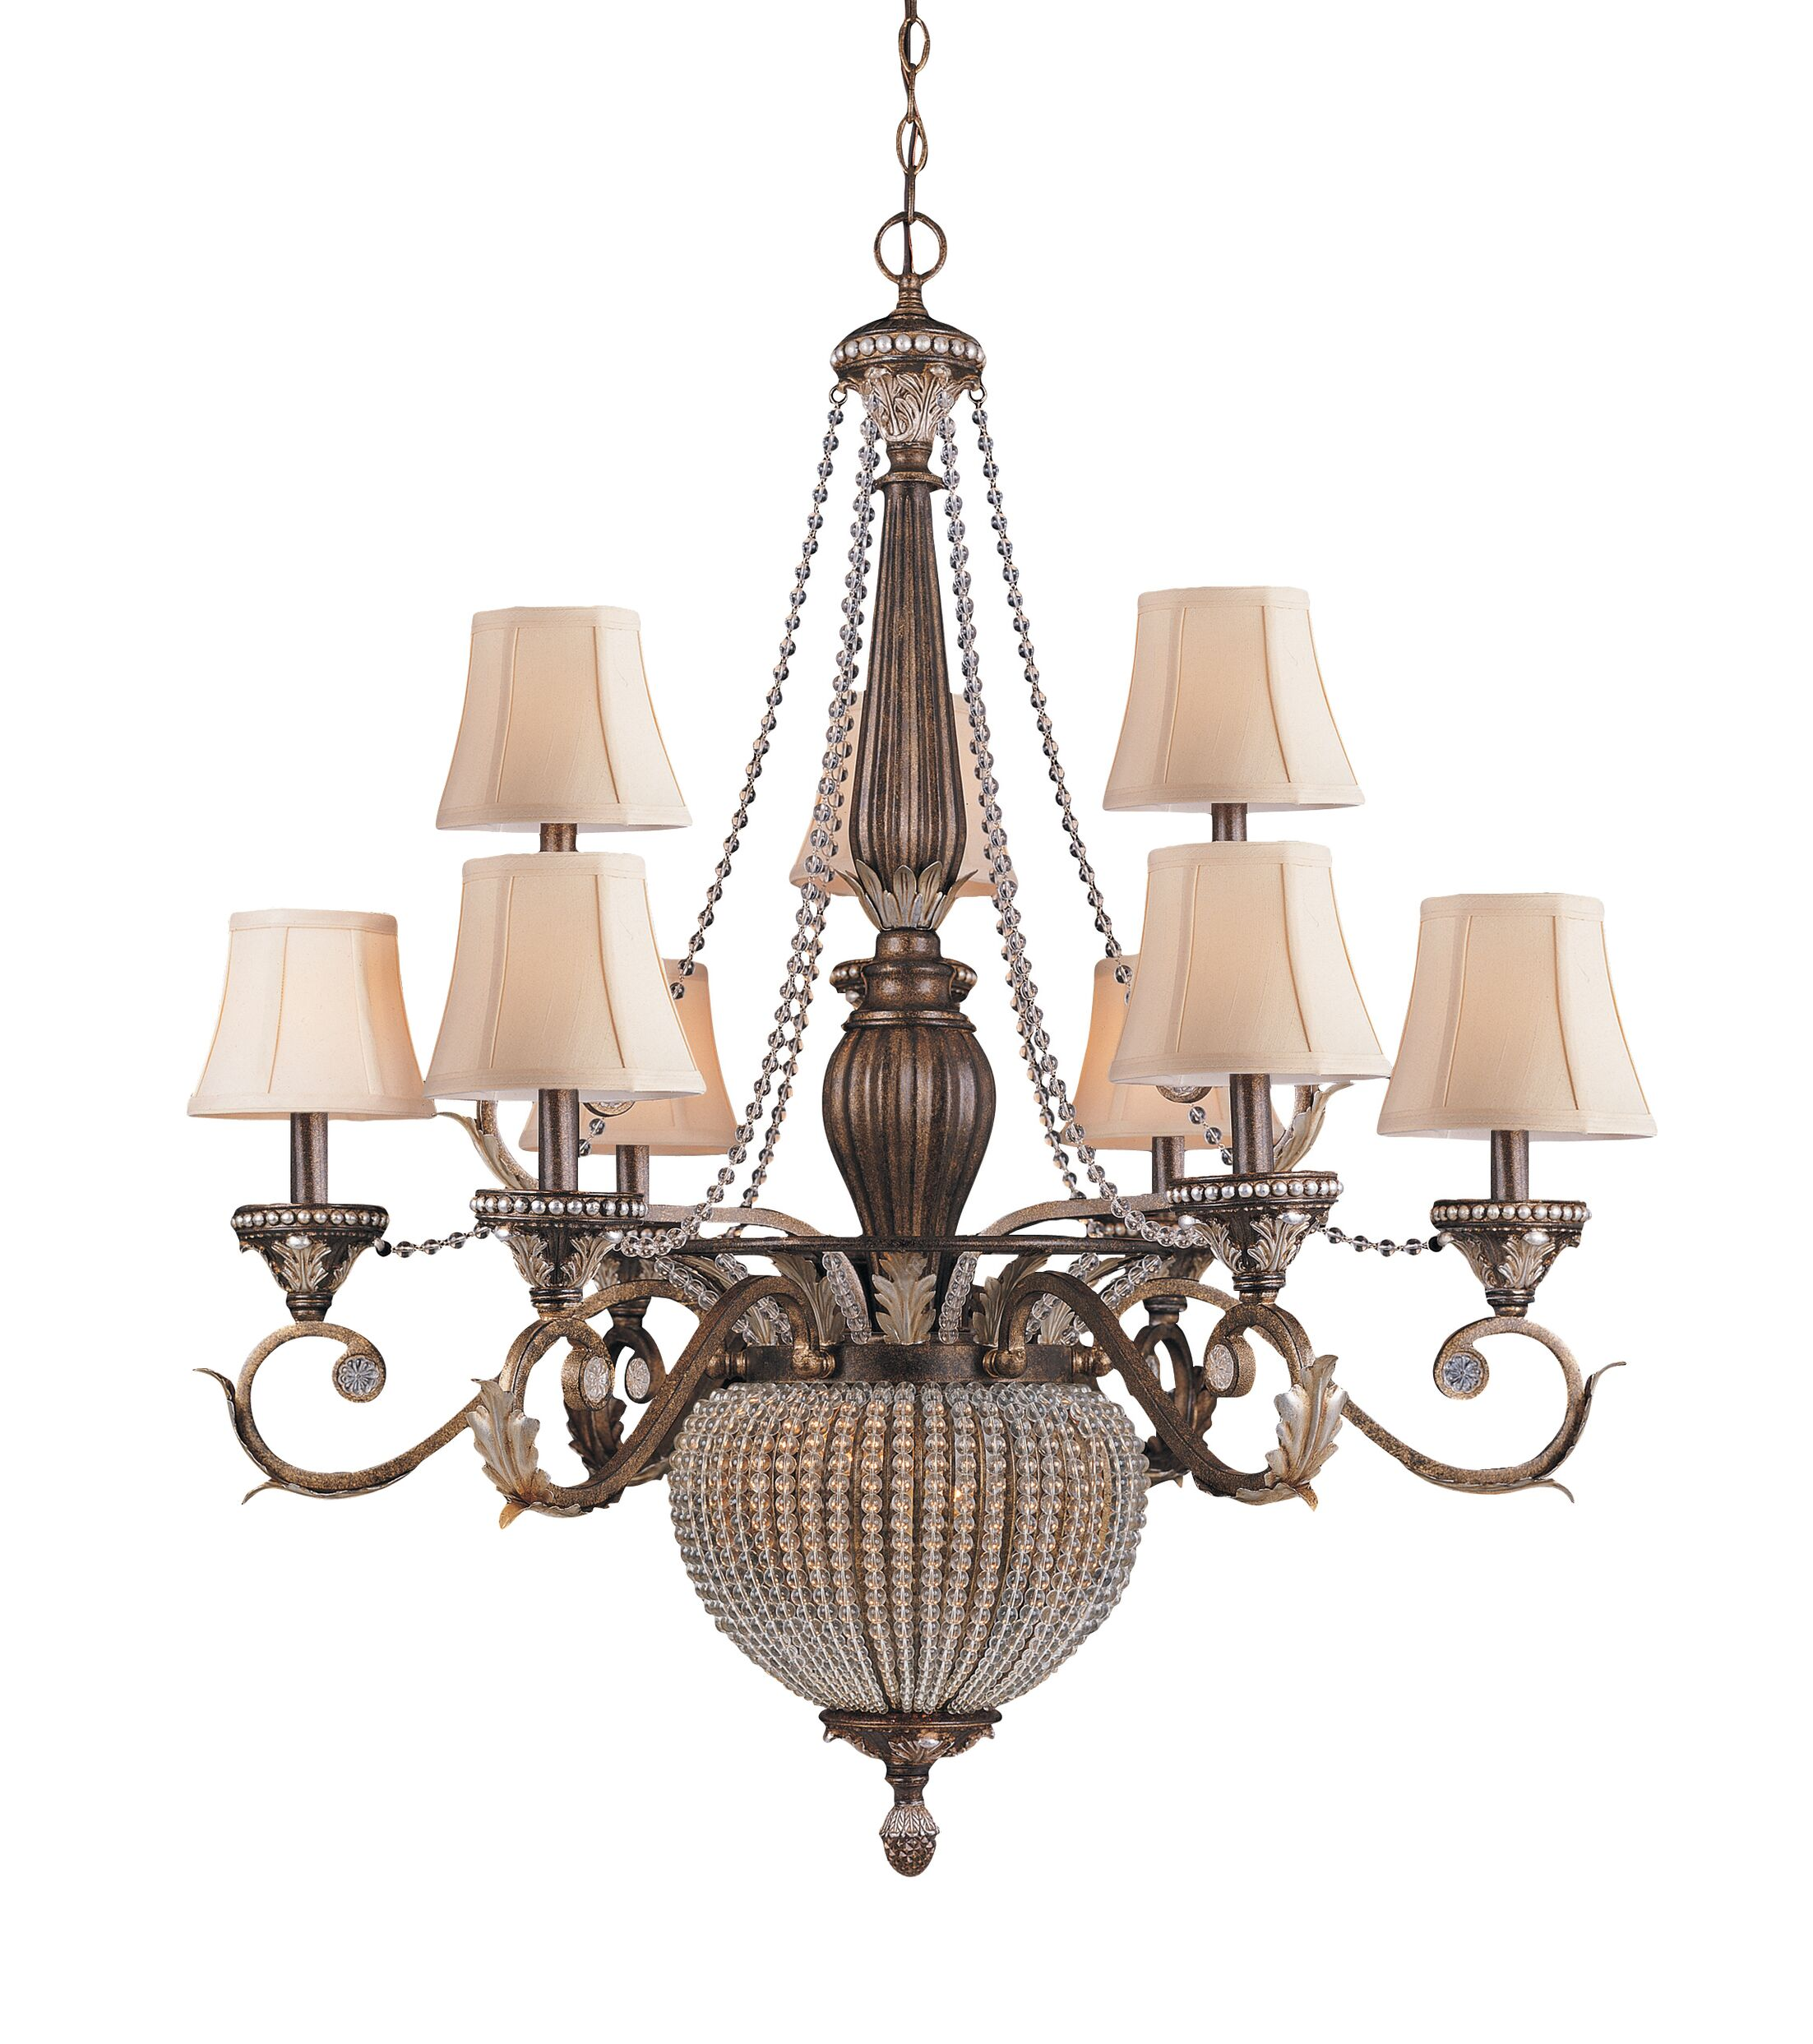 Moody 11-Light Shaded Chandelier